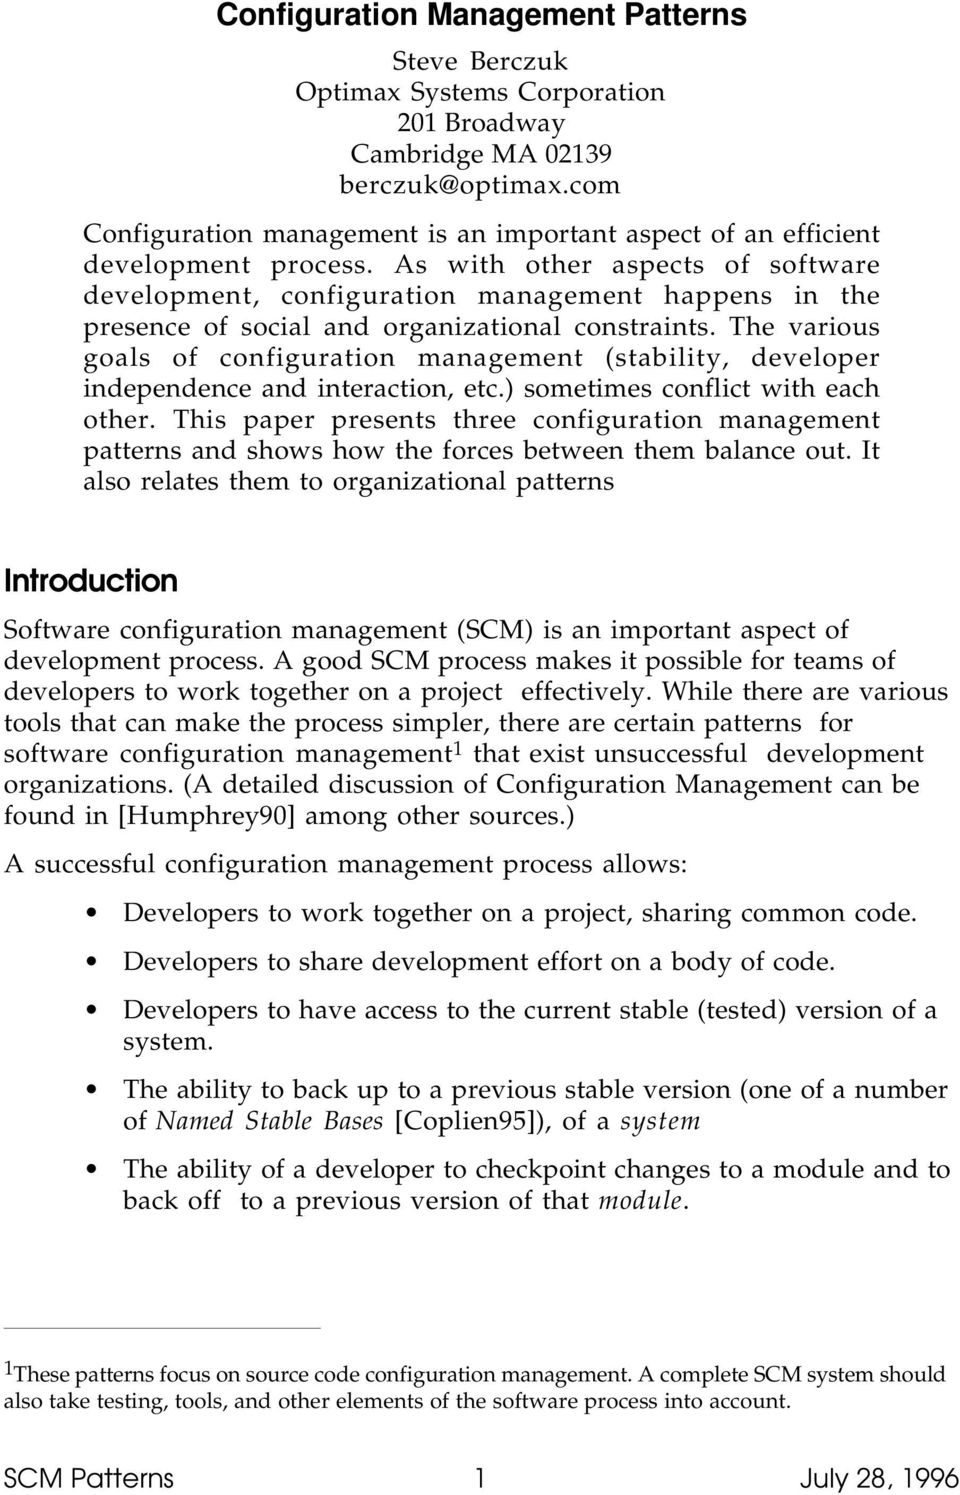 As with other aspects of software development, configuration management happens in the presence of social and organizational constraints.